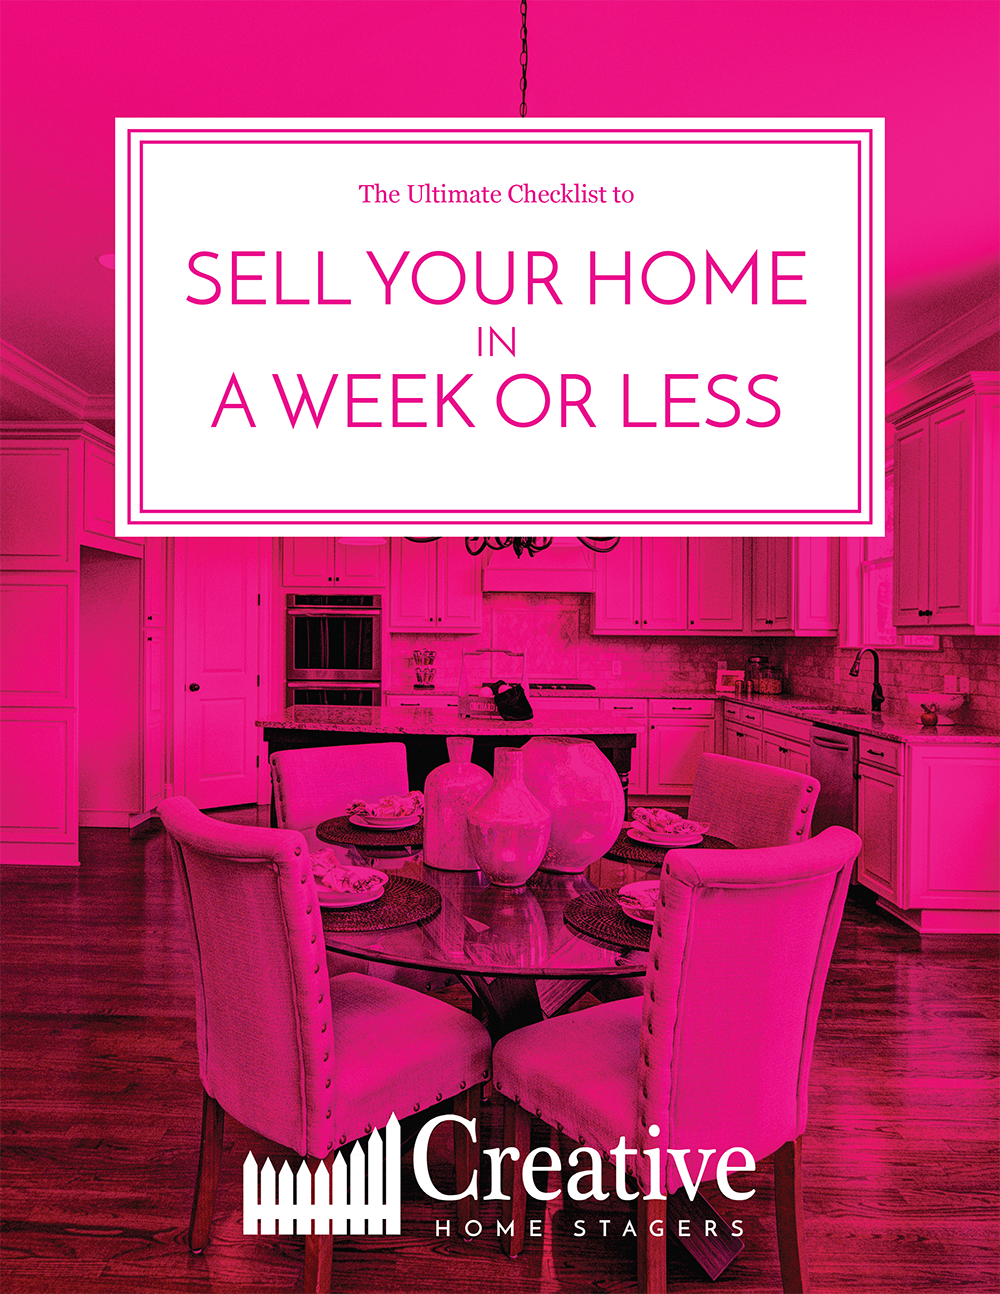 The Ultimate Checklist to Sell Your Home in a Week or Less Thumbnail.png